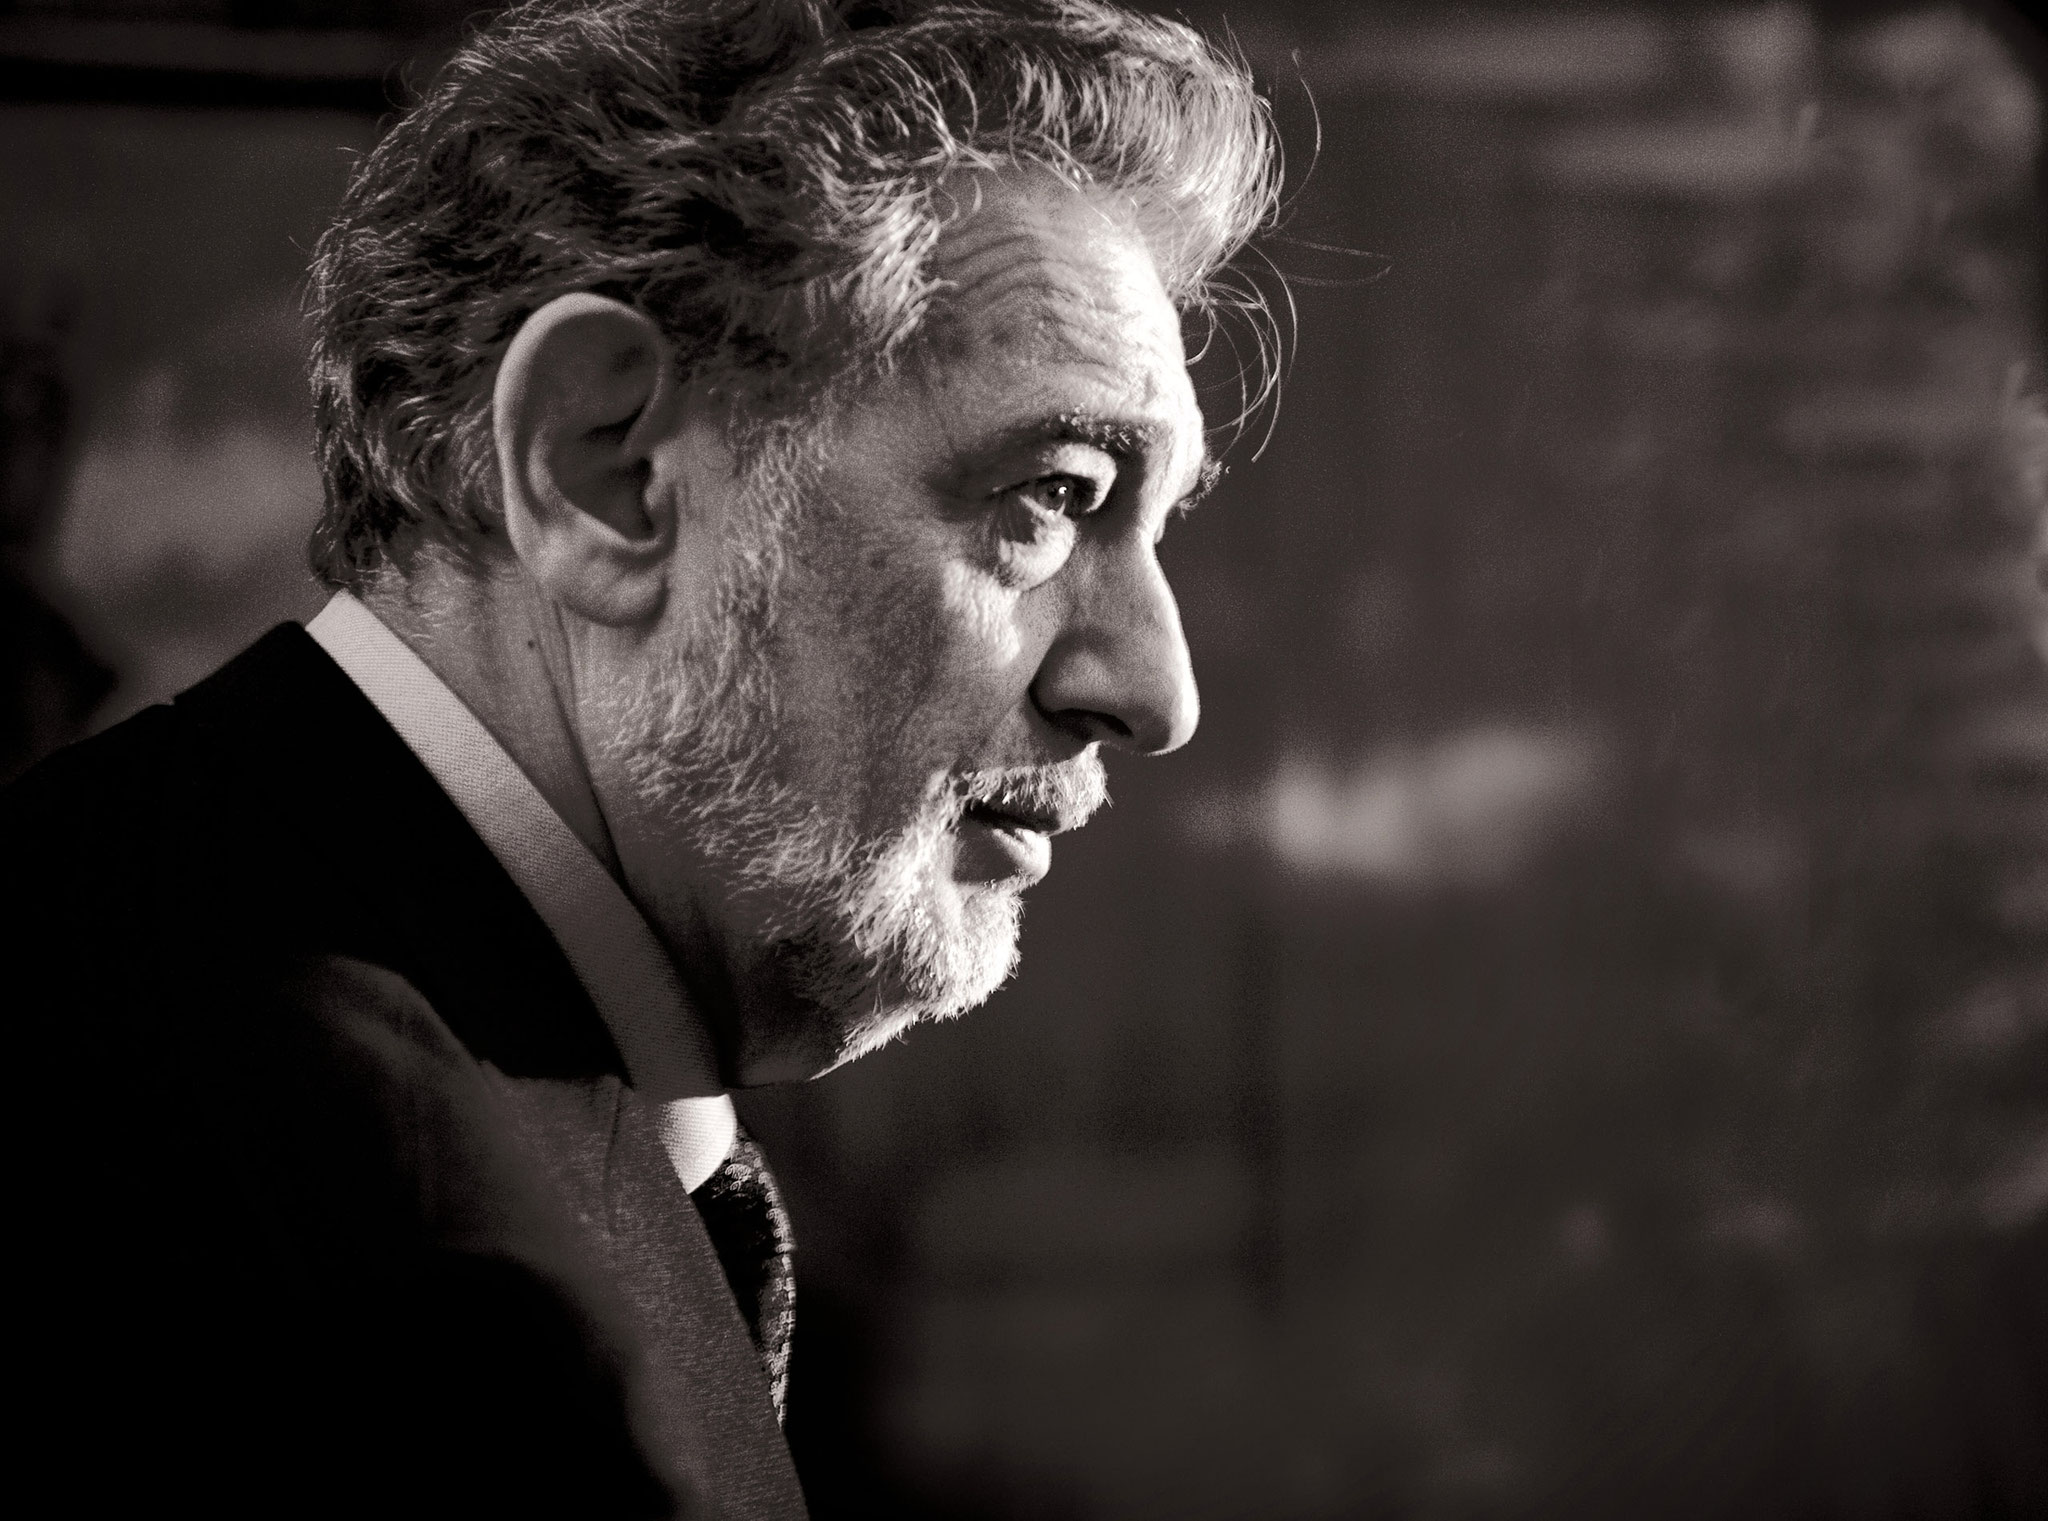 Placido Domingo, Tenor